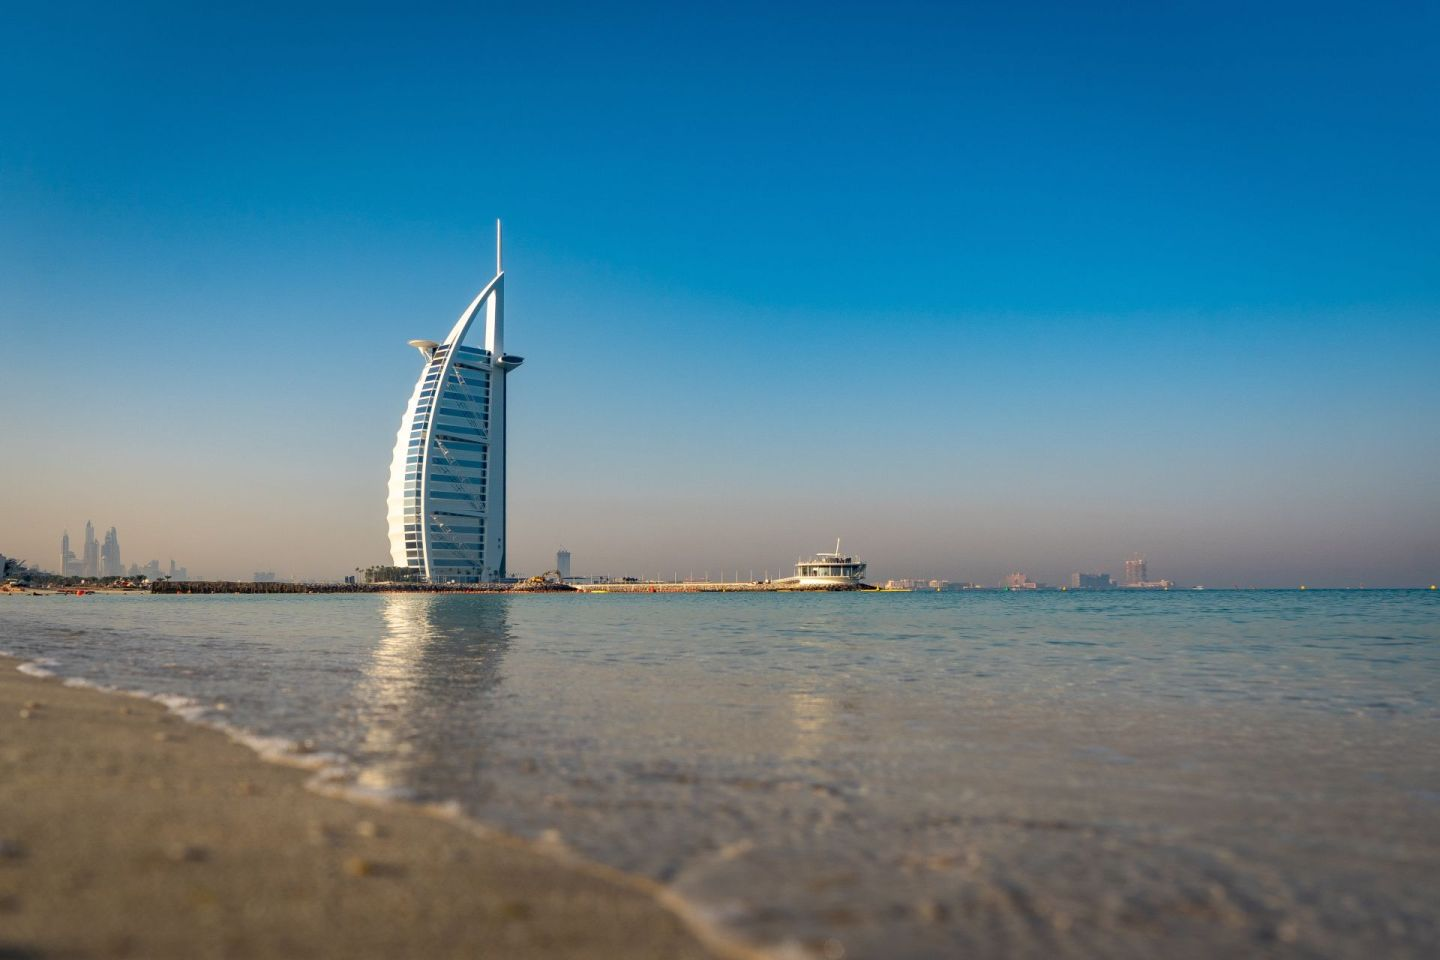 Top holiday locations for 2020: Dubai, UAE